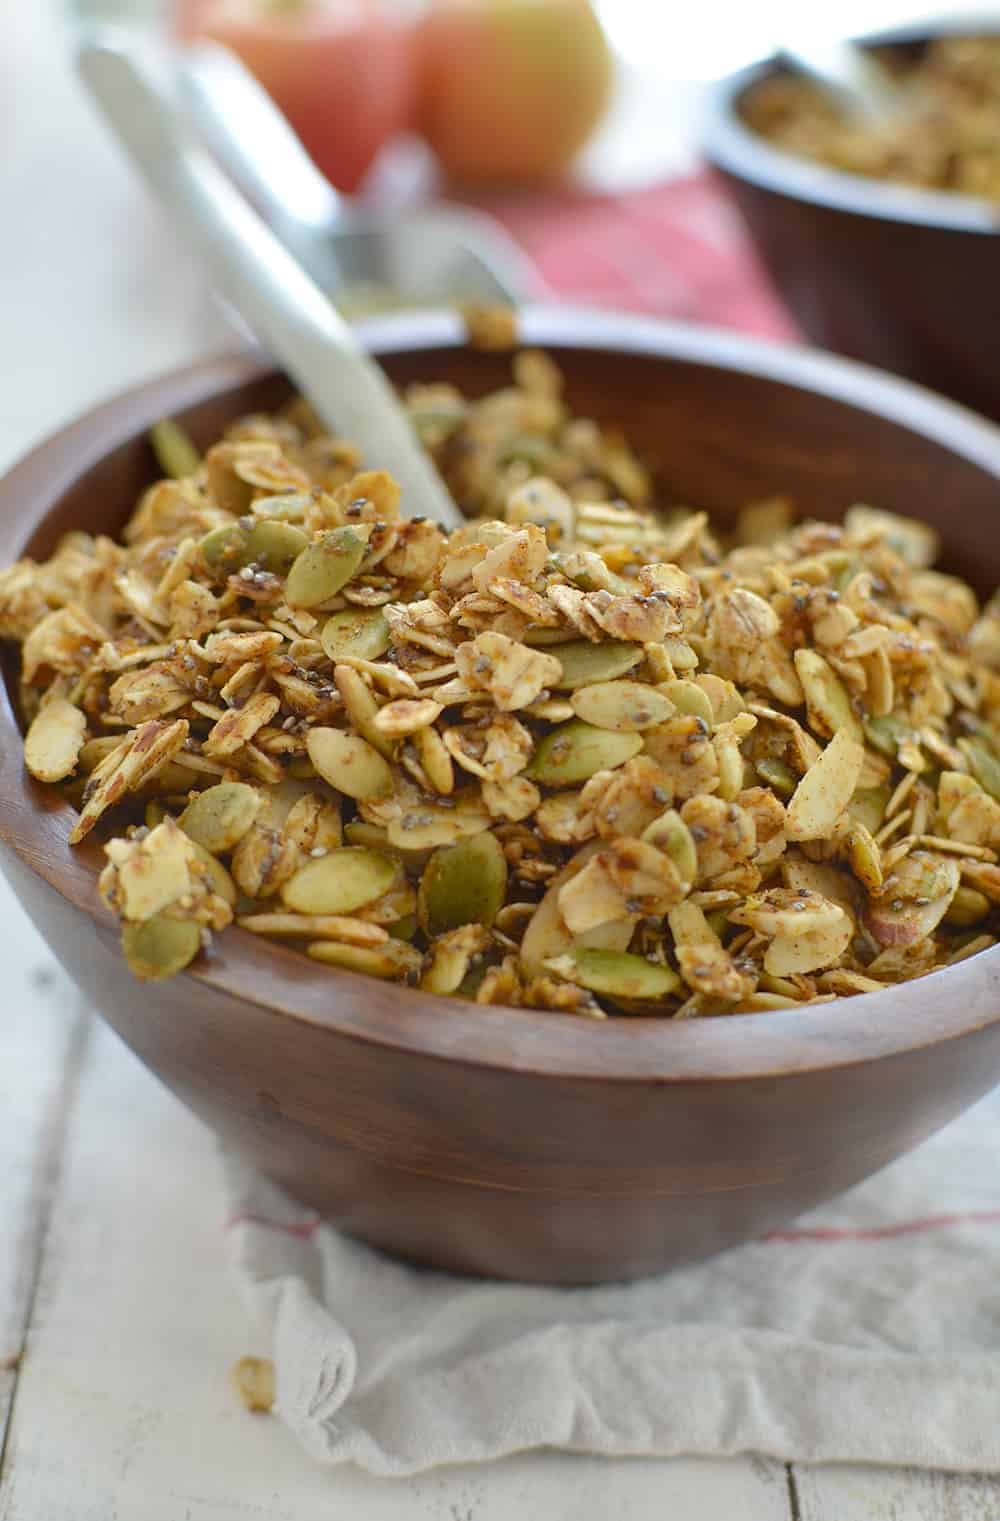 Granola made simple- and healthy! Skillet Pumpkin Granola- ready in just 10 minutes! Cook everything on the stove and enjoy. Vegan and Glutenfree. | www.delishknowledge.com